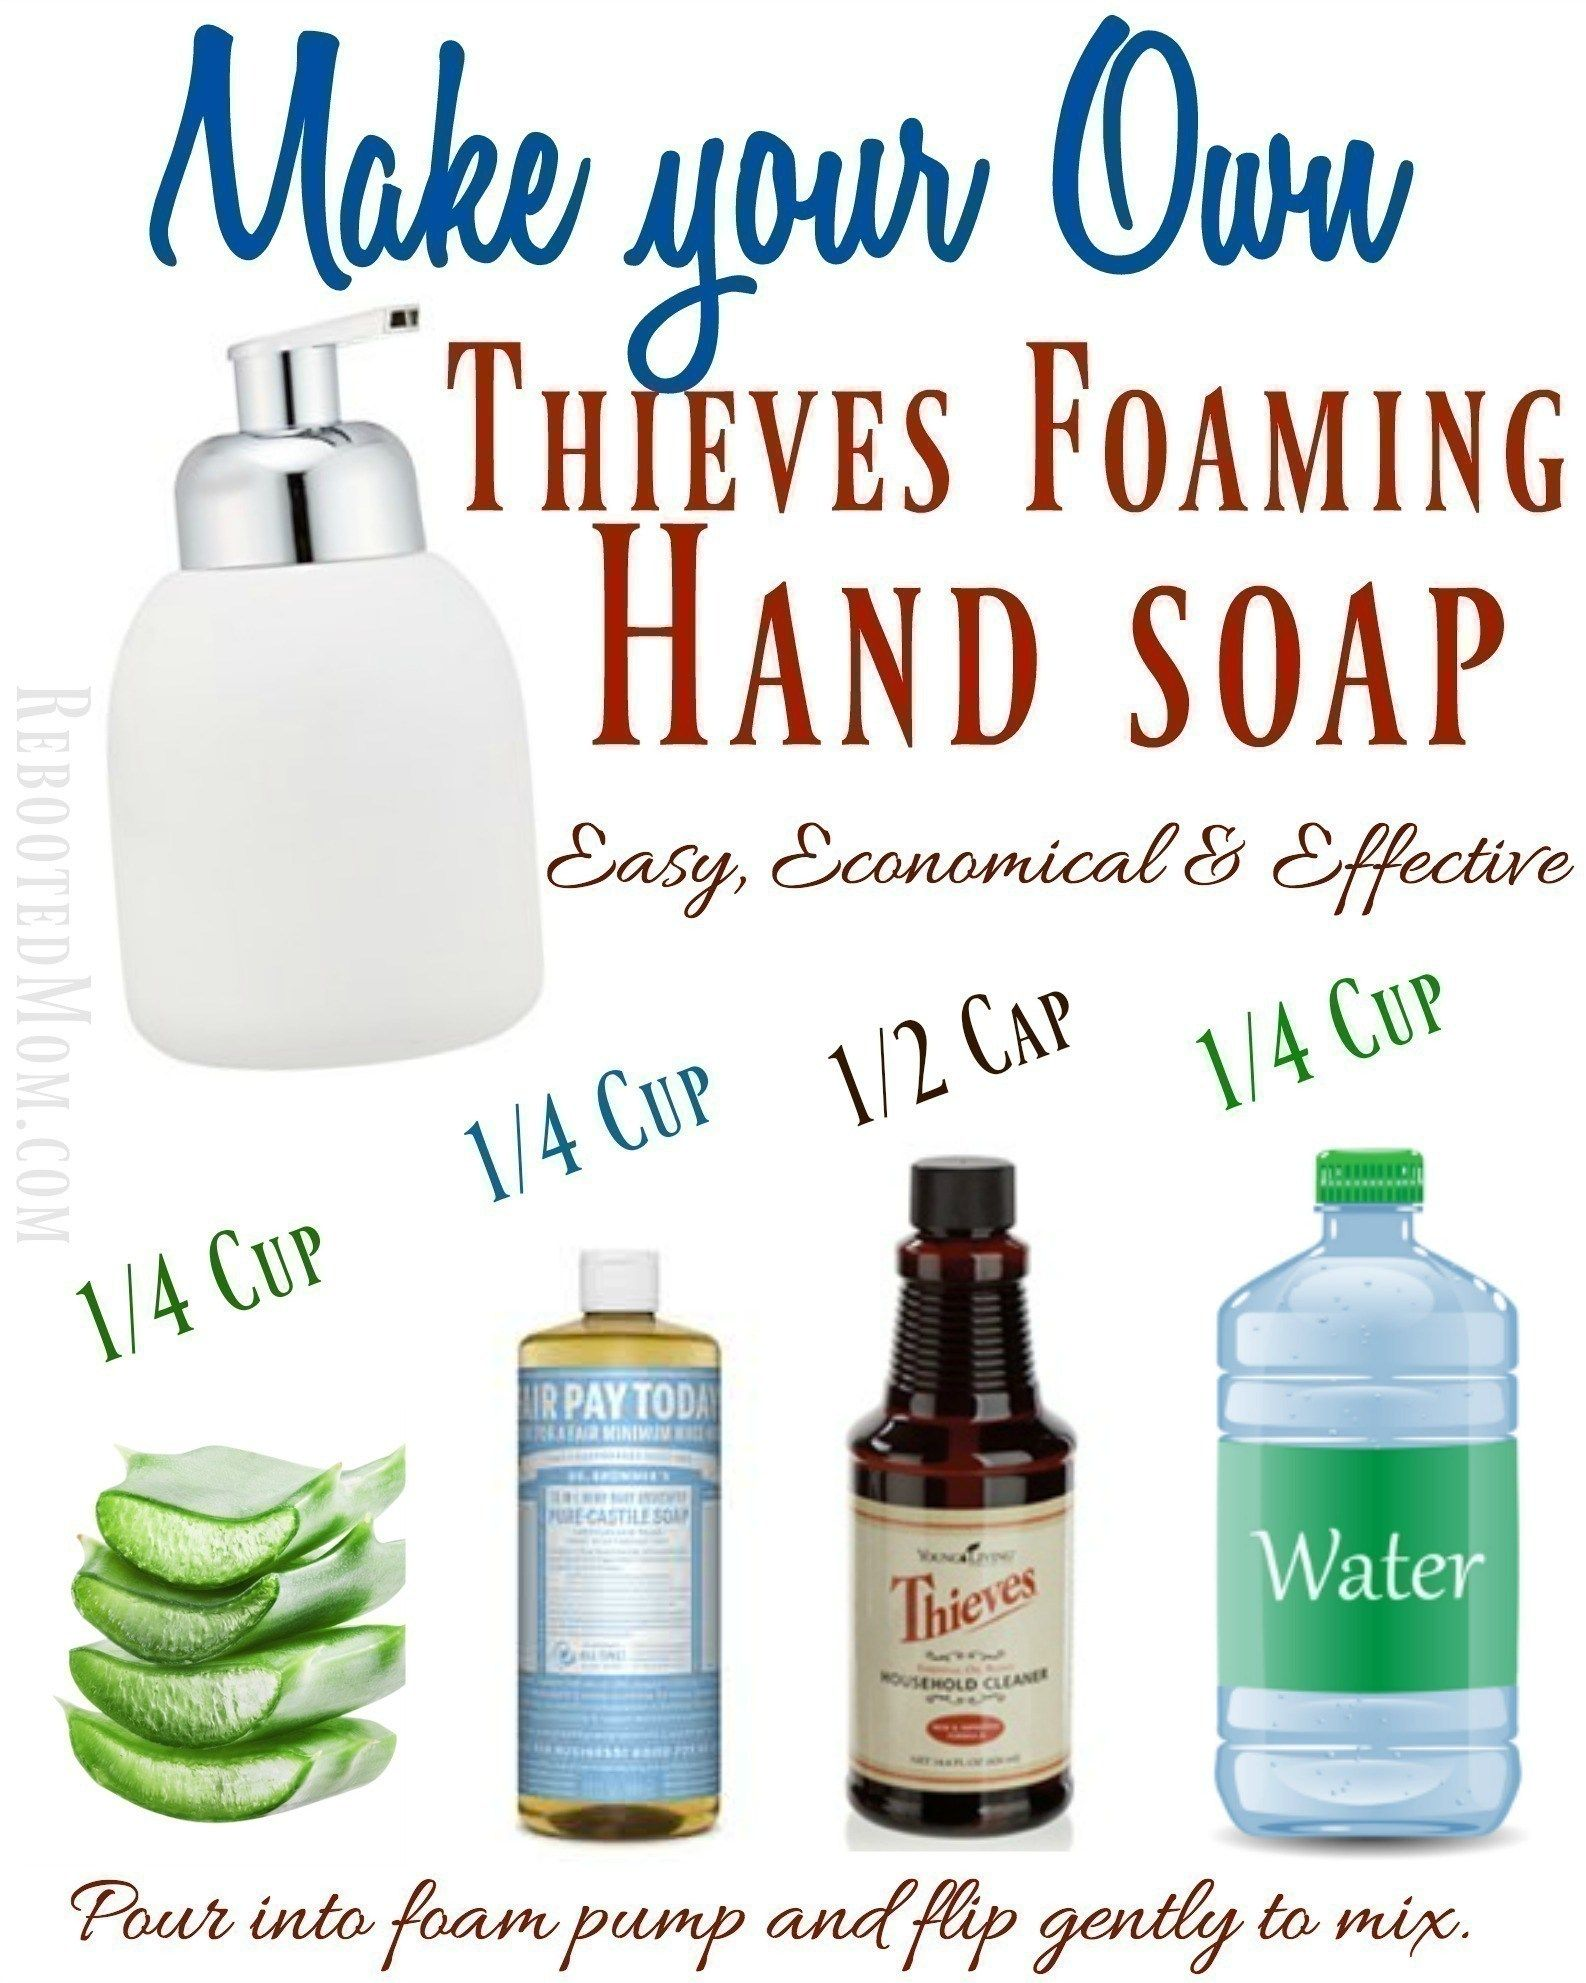 Make your Own Thieves Foaming Hand Soap Hand wash and